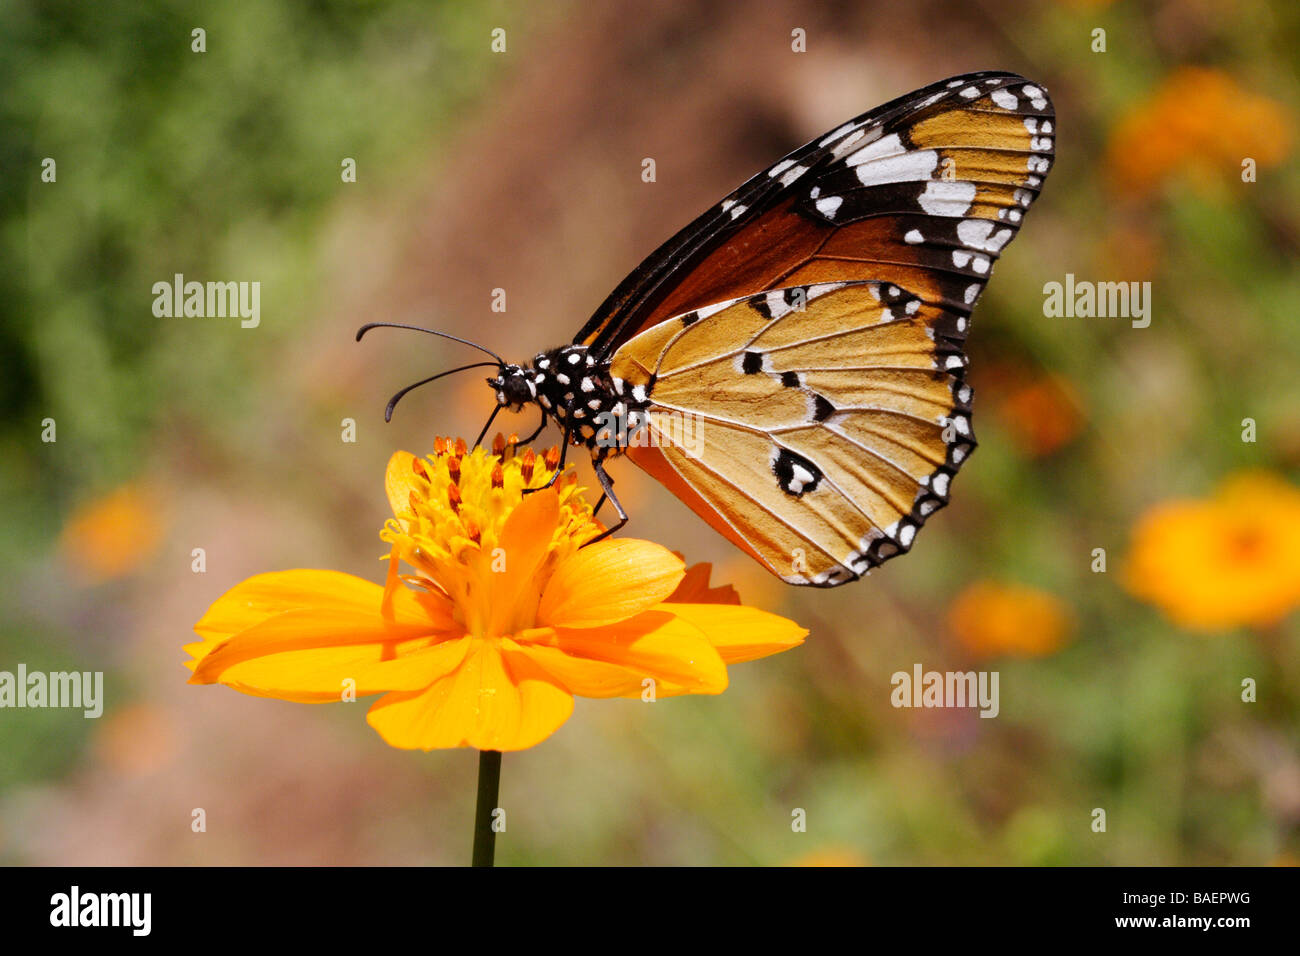 Beutiful beutiful butterfly landing on flower stock photo, royalty free